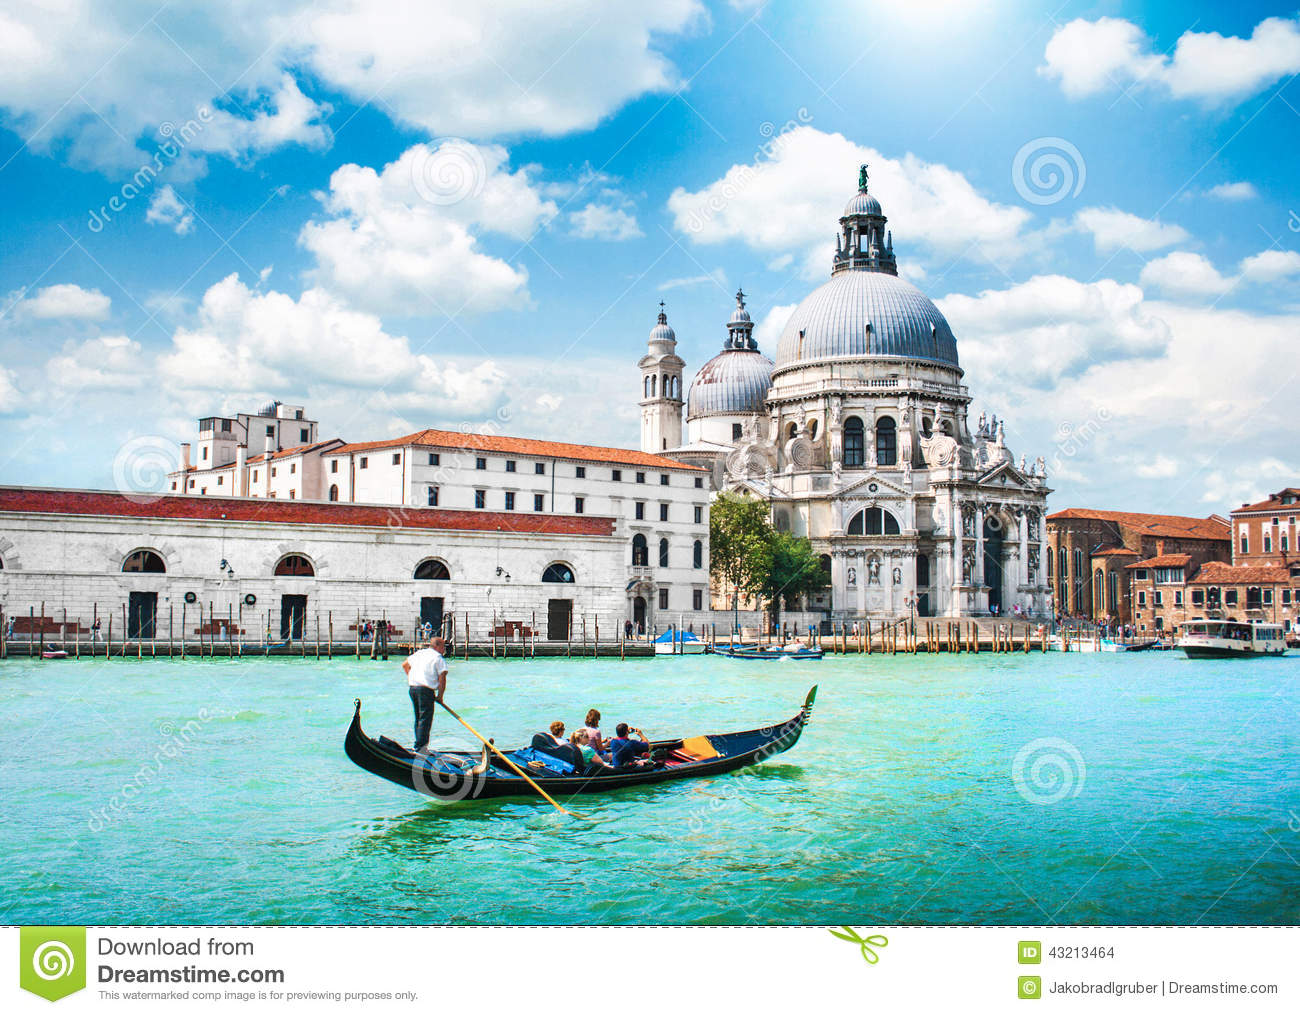 Download Scenic Postcard View Of Venice, Italy Stock Photo - Image of blue, gondolier: 43213464